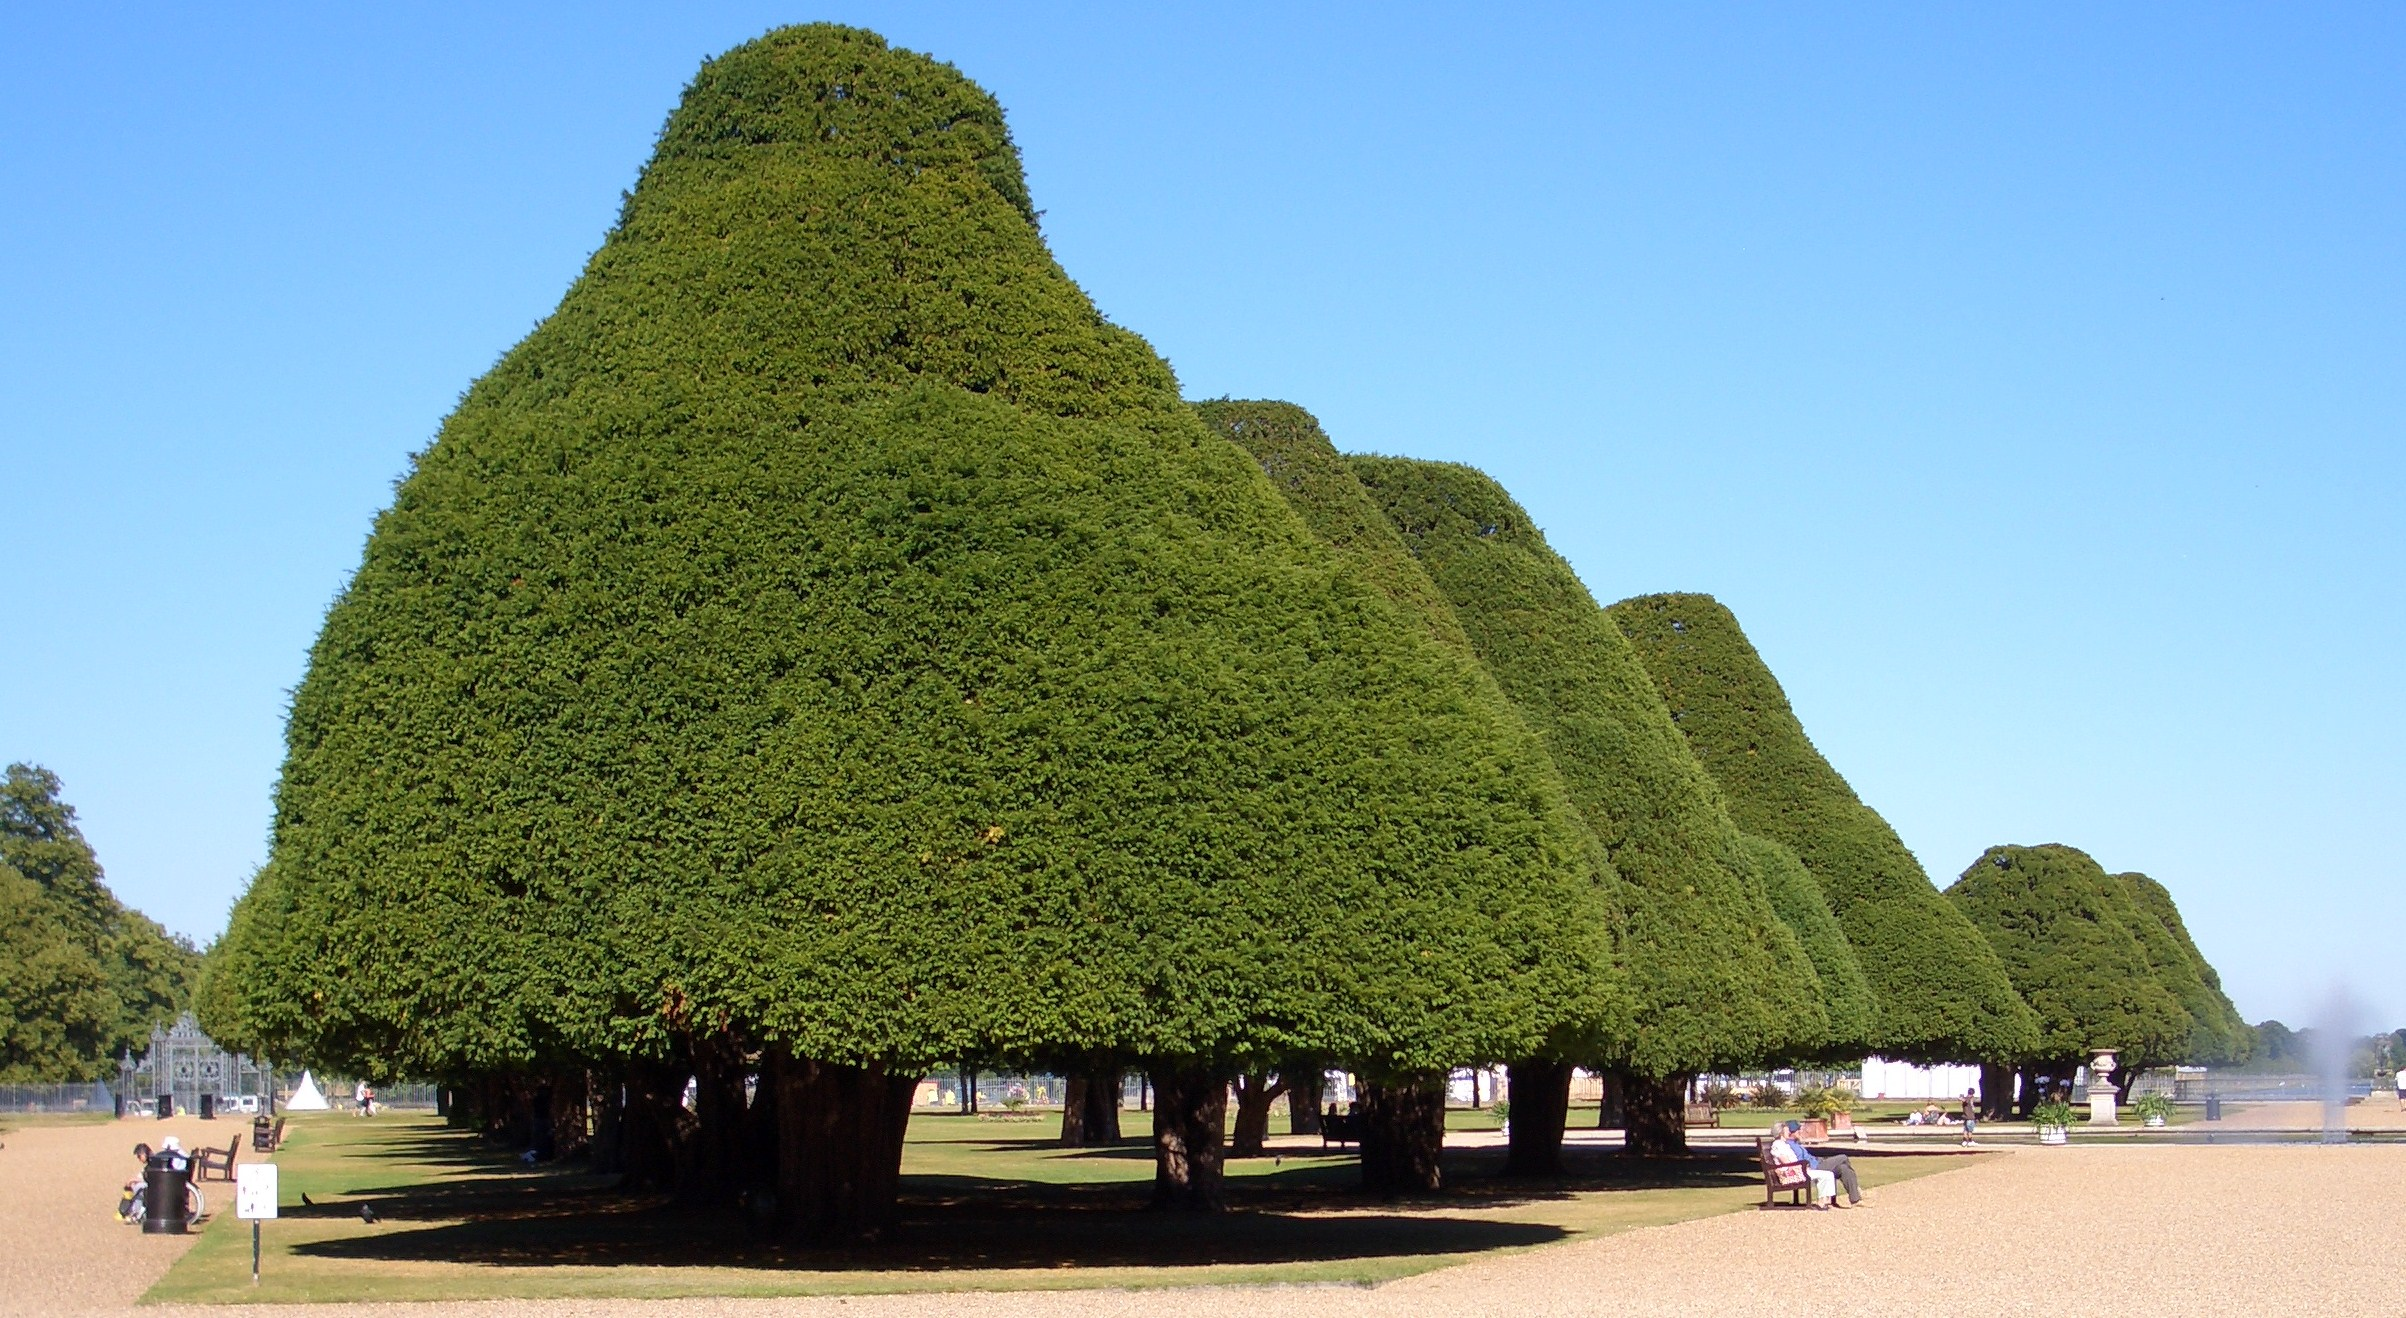 1 the alice in wonderland mushroom trees at hampton court in london Old Hat press releases will no longer cut it